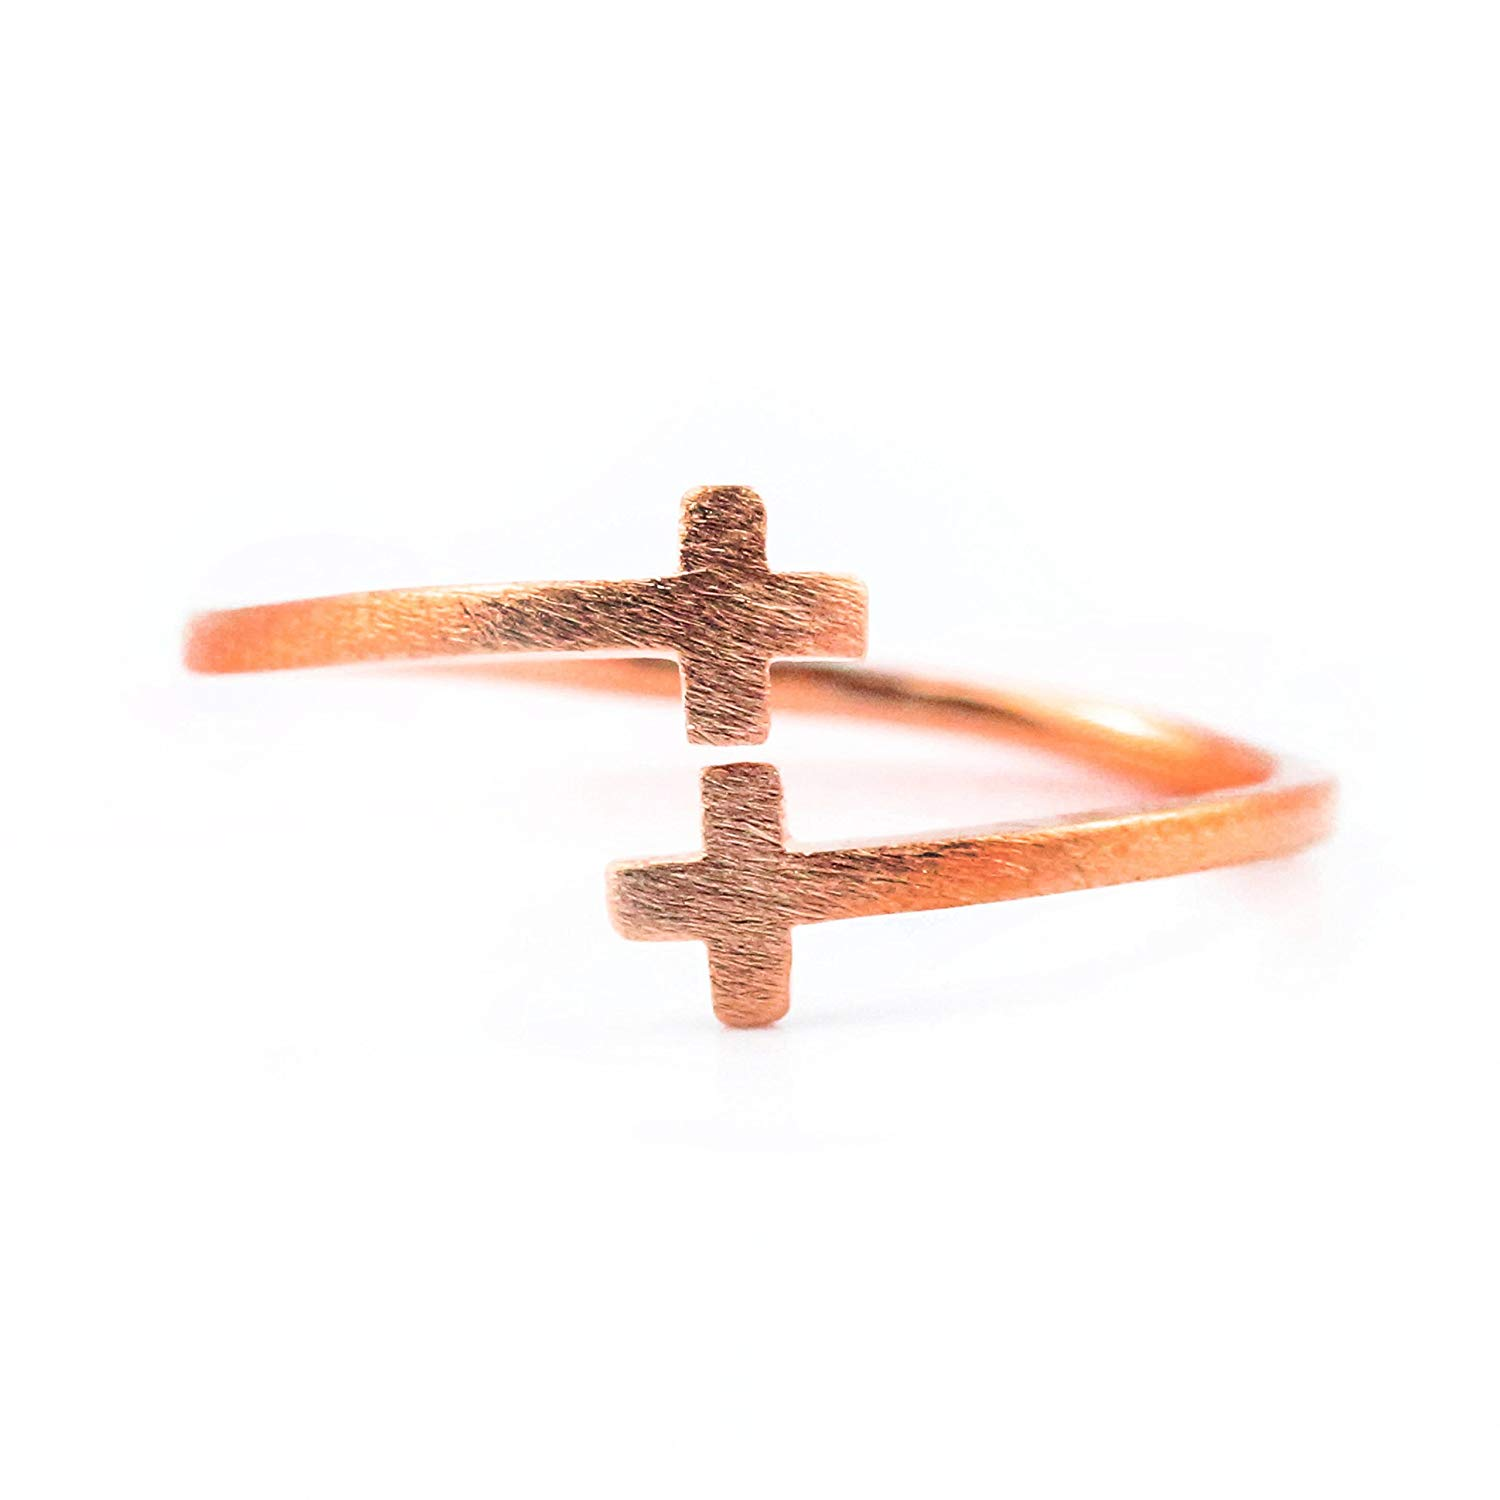 CROSS RING, Rose Gold Plated Alloy Ring, Rose Gold Ring Adjustable for Women Ring Size 5-7 Thin Stackable Ring Unique